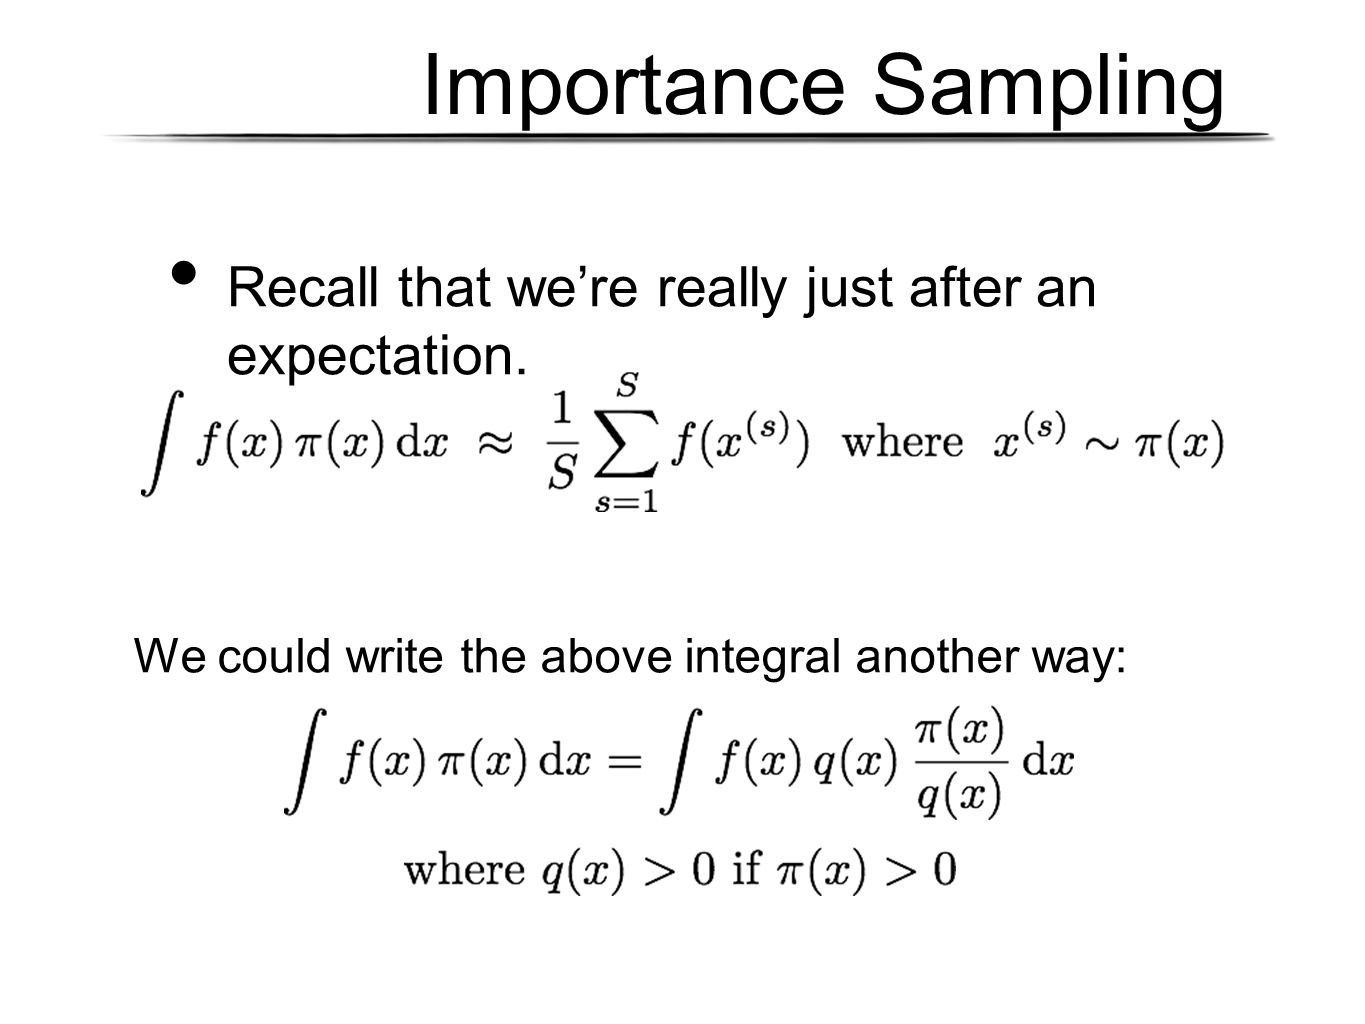 Importance Sampling Recall that we're really just after an expectation.